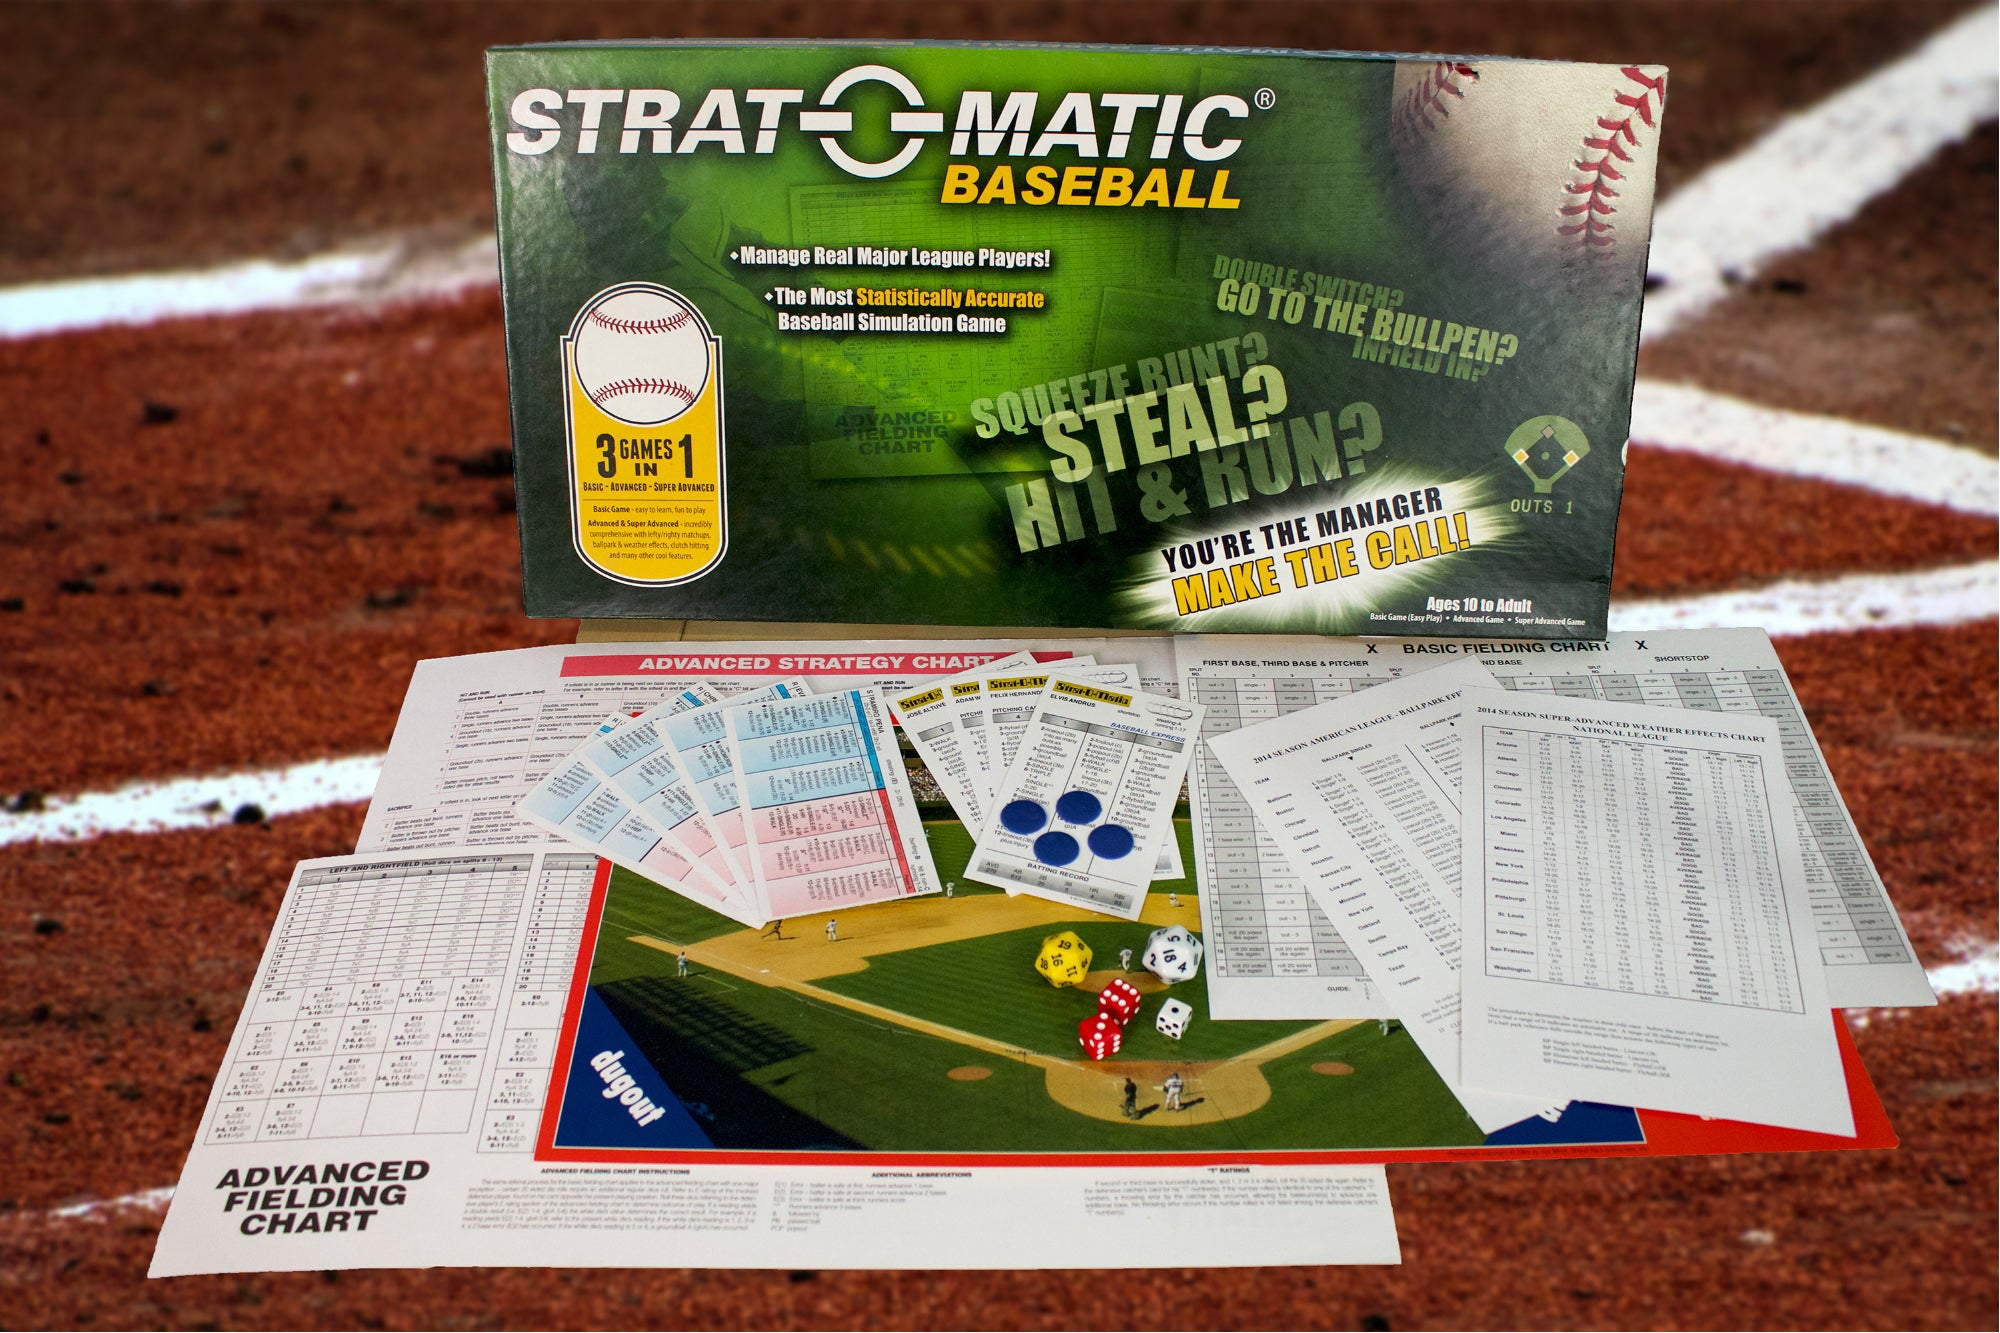 Strat-O-Matic's Surge in Demand Is No Fantasy